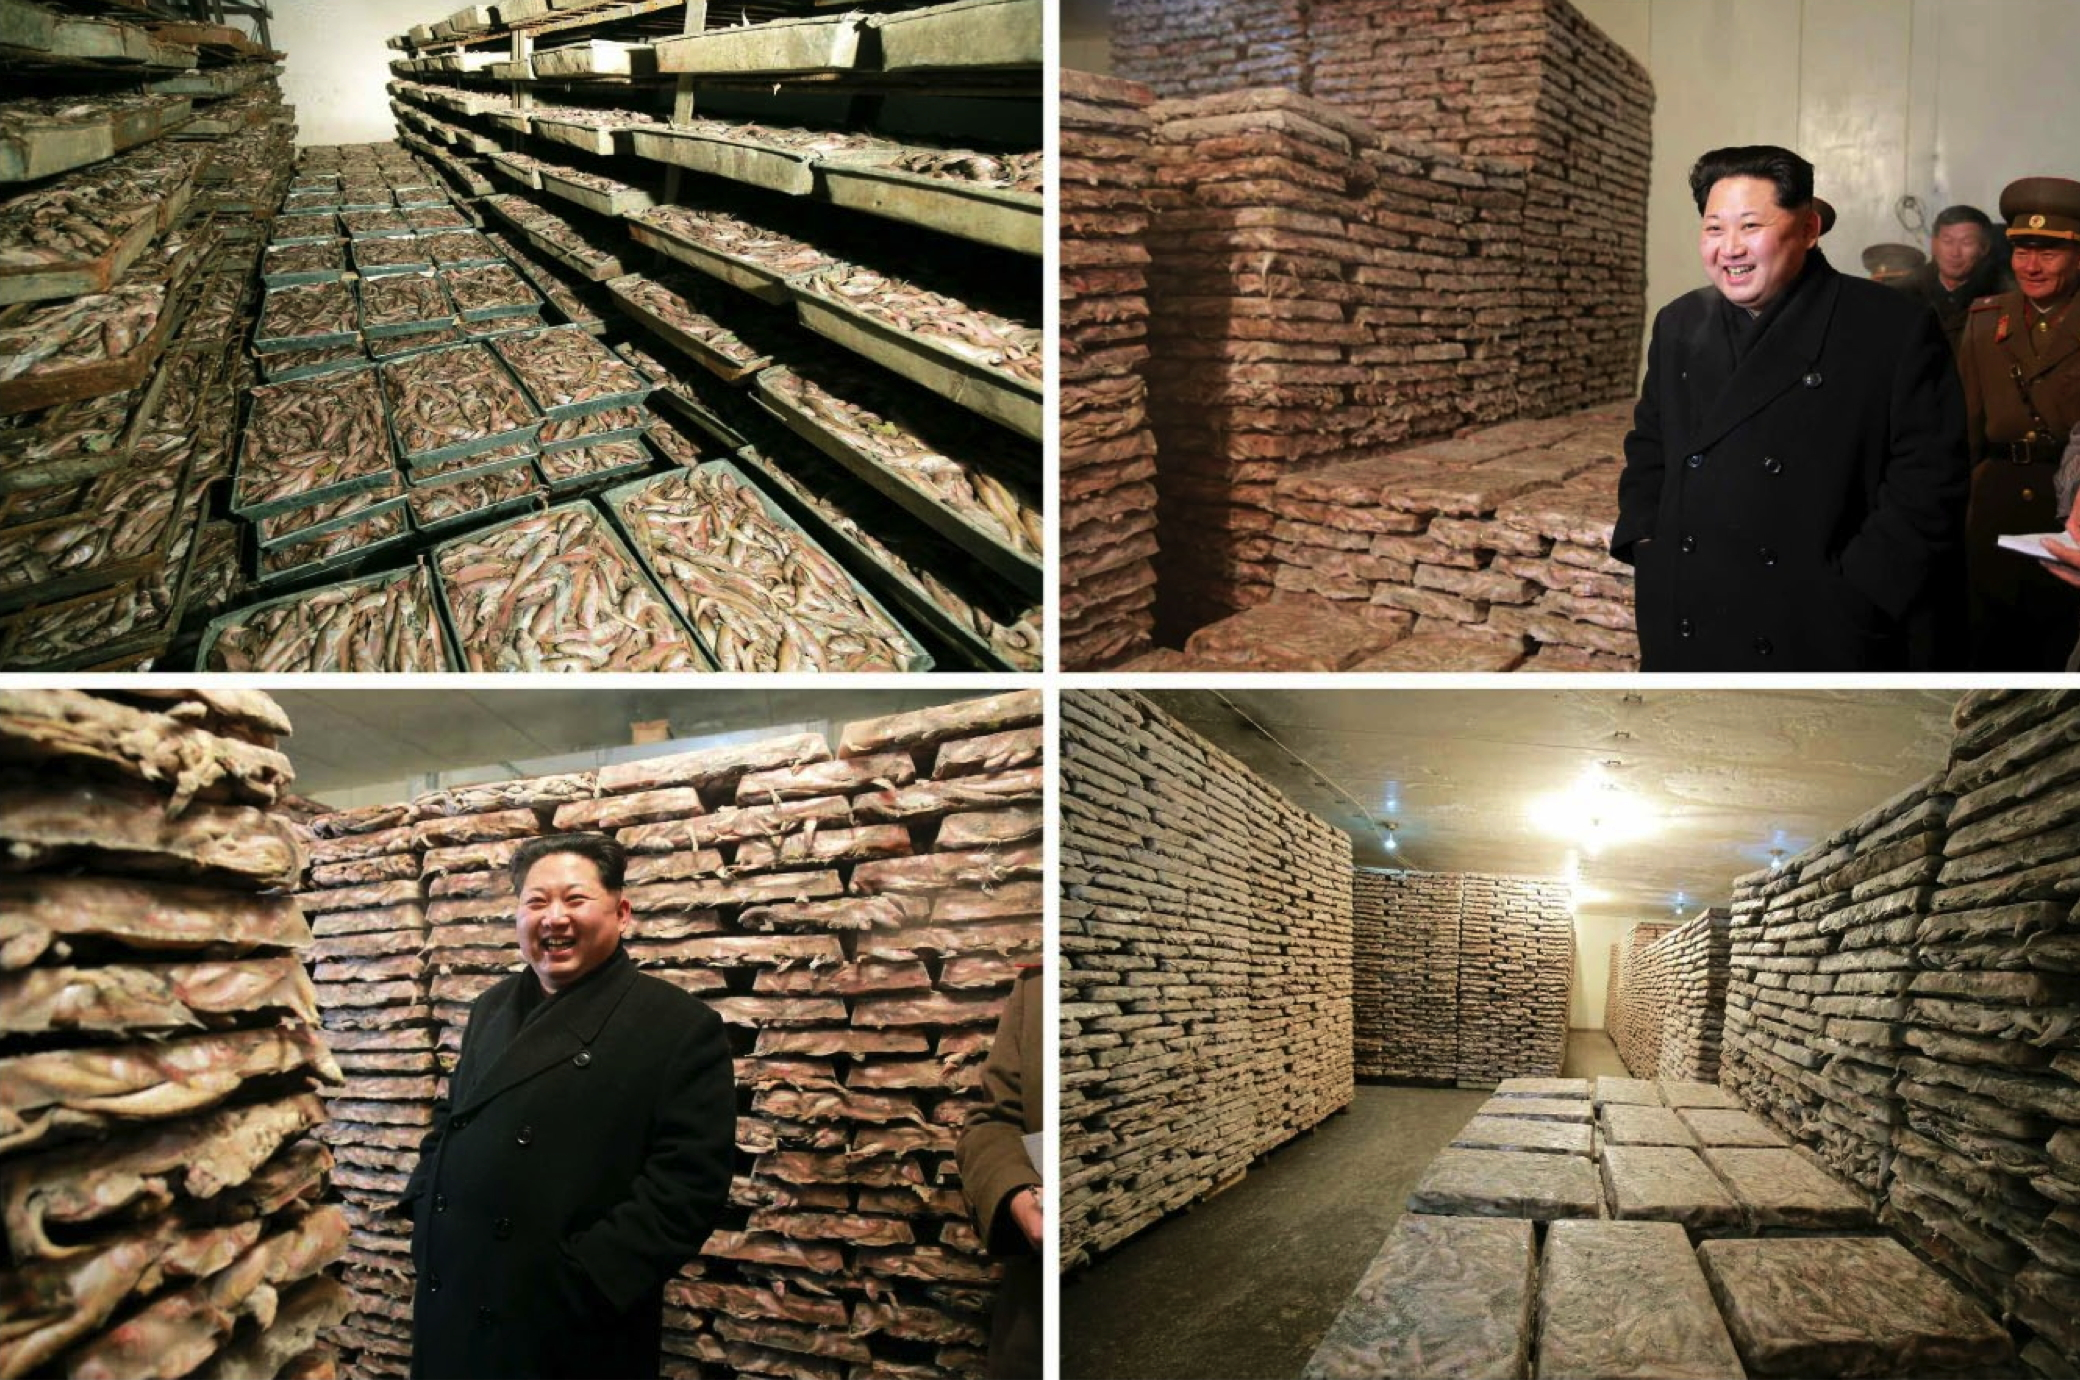 Kim Jong Un inspects products of Fishery Station #15 (Photo: Rodong Sinmun).